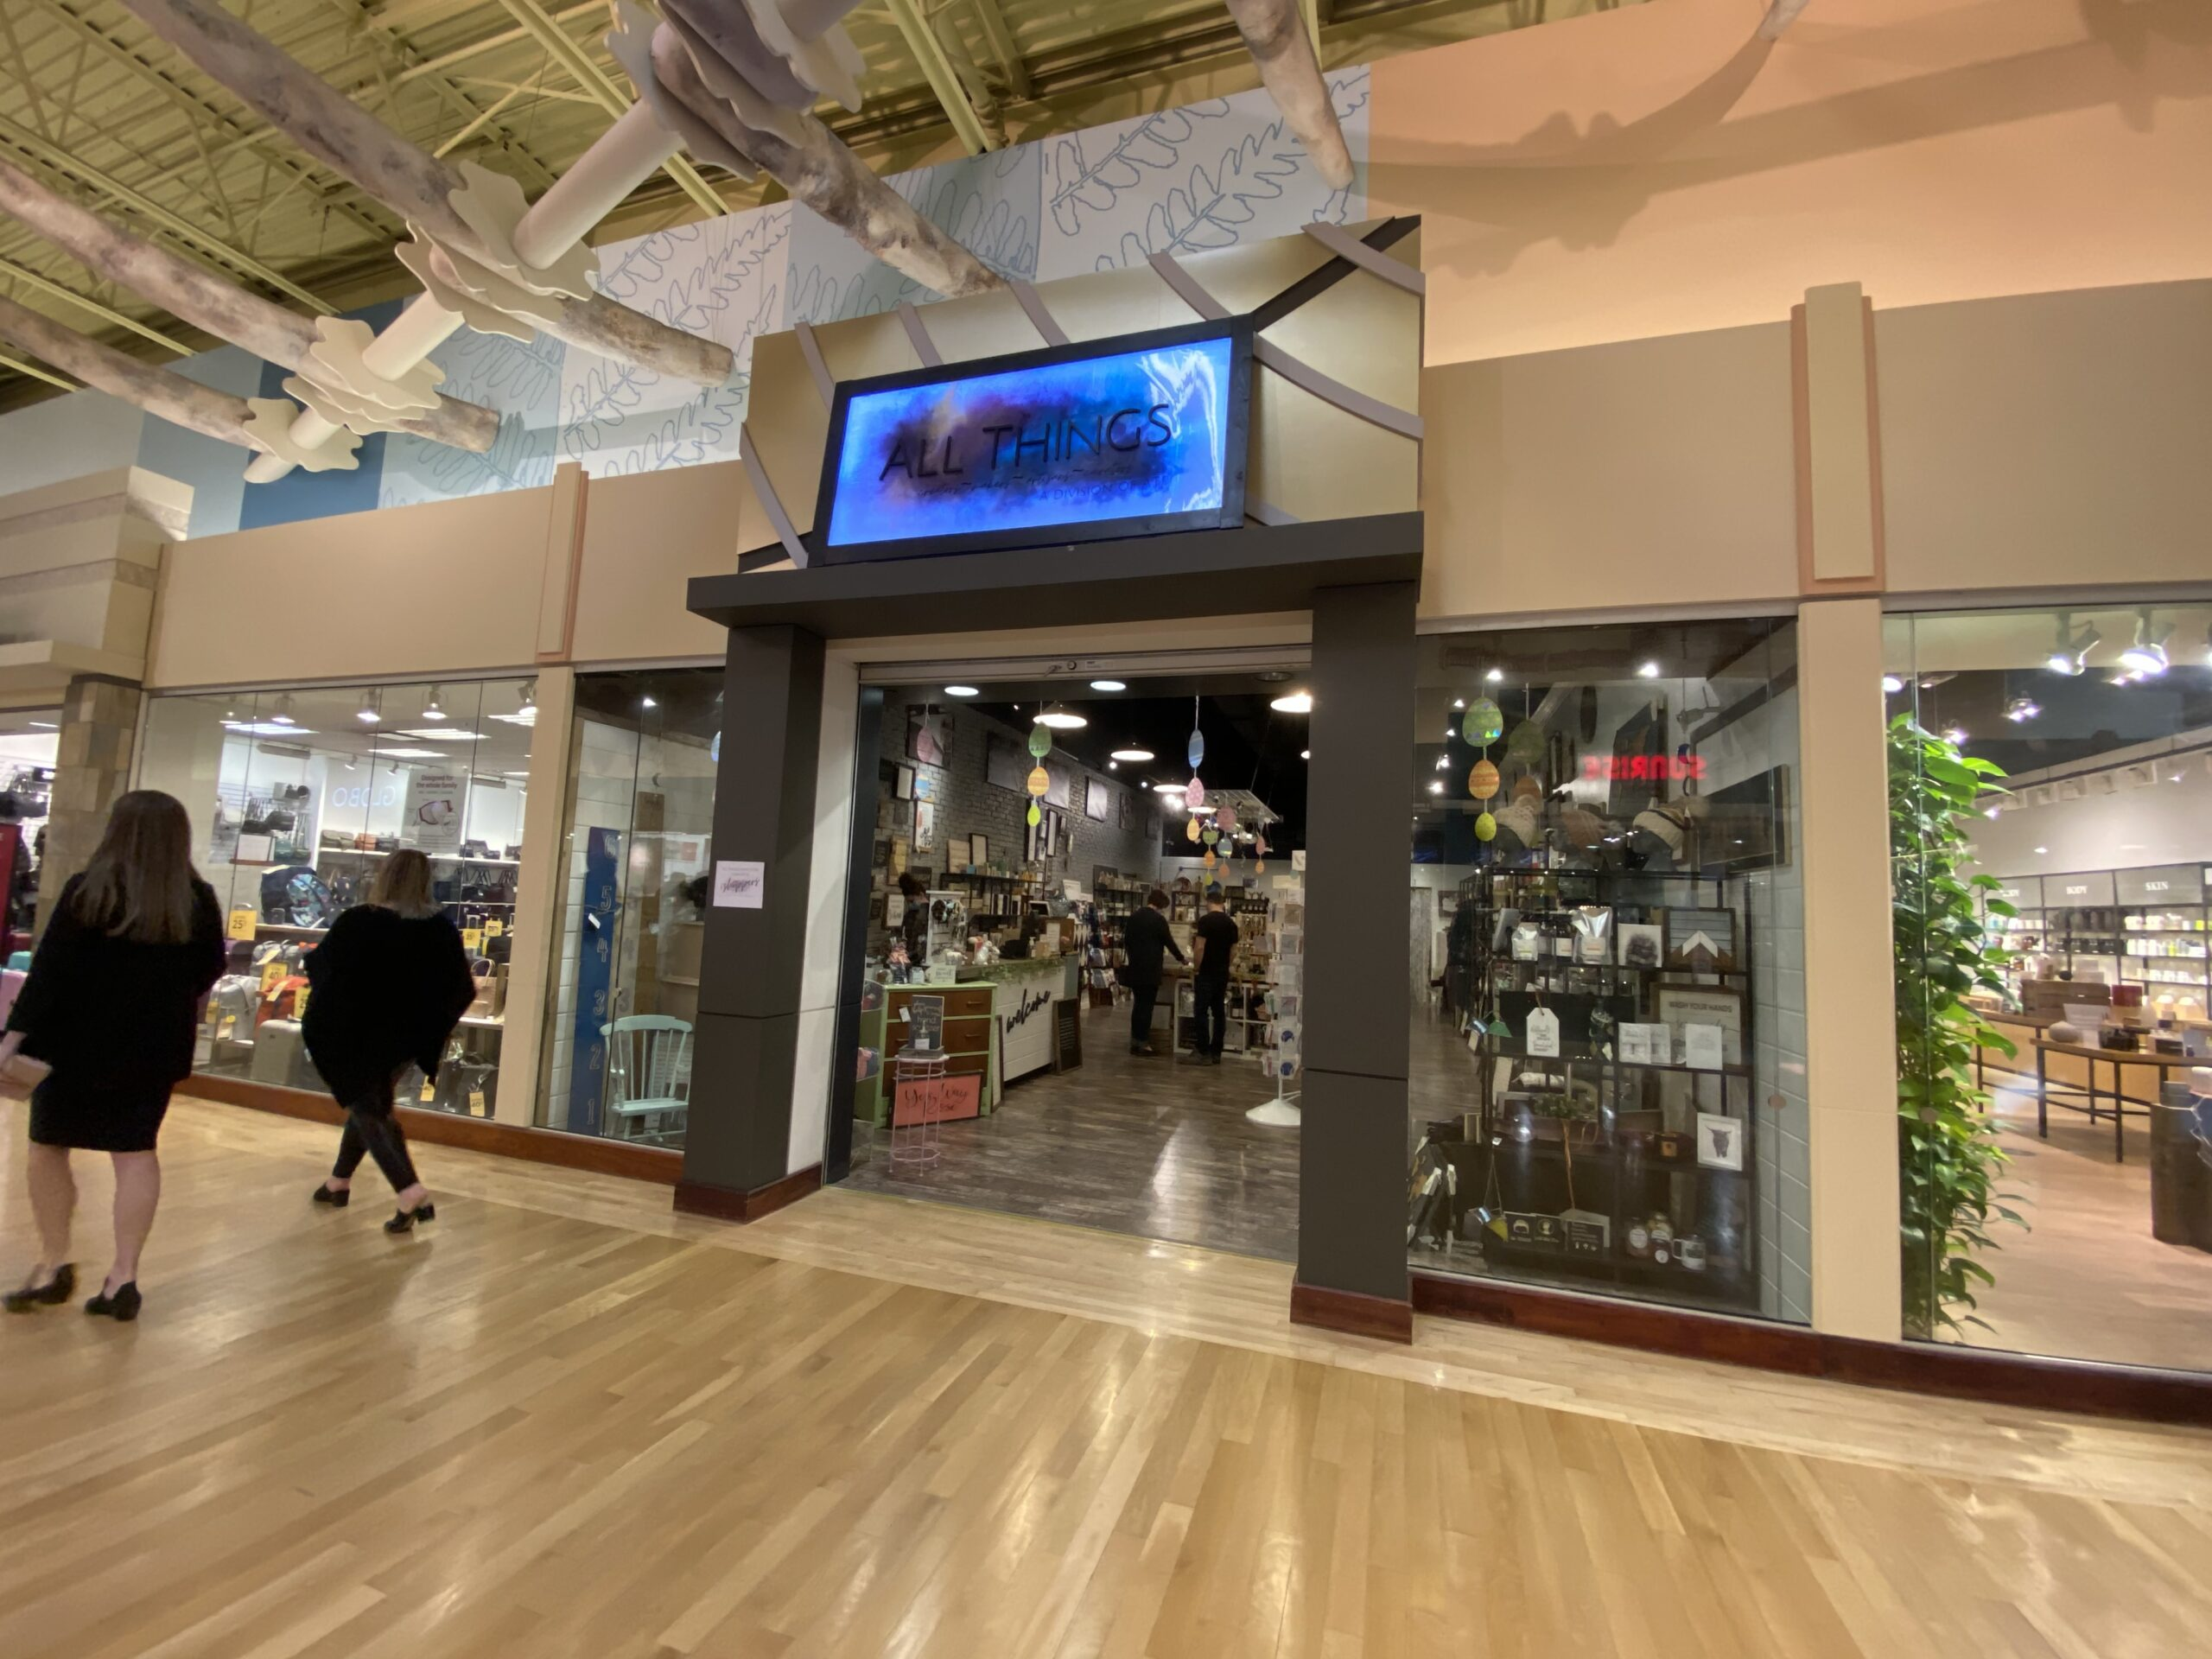 All Things at CrossIron Mills